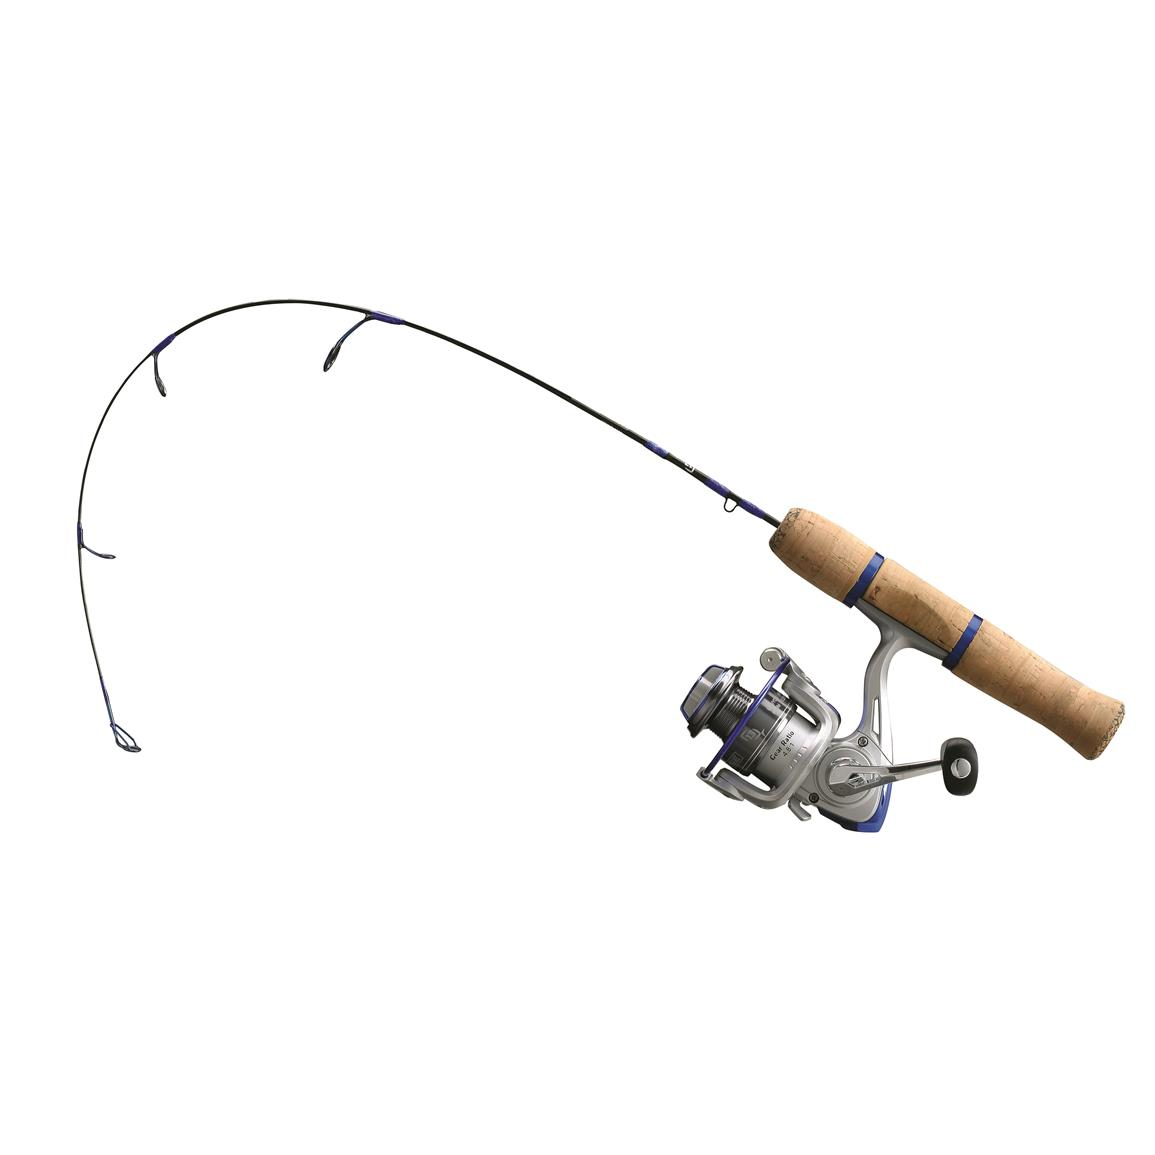 13 fishing white noise ice fishing rod and reel combo